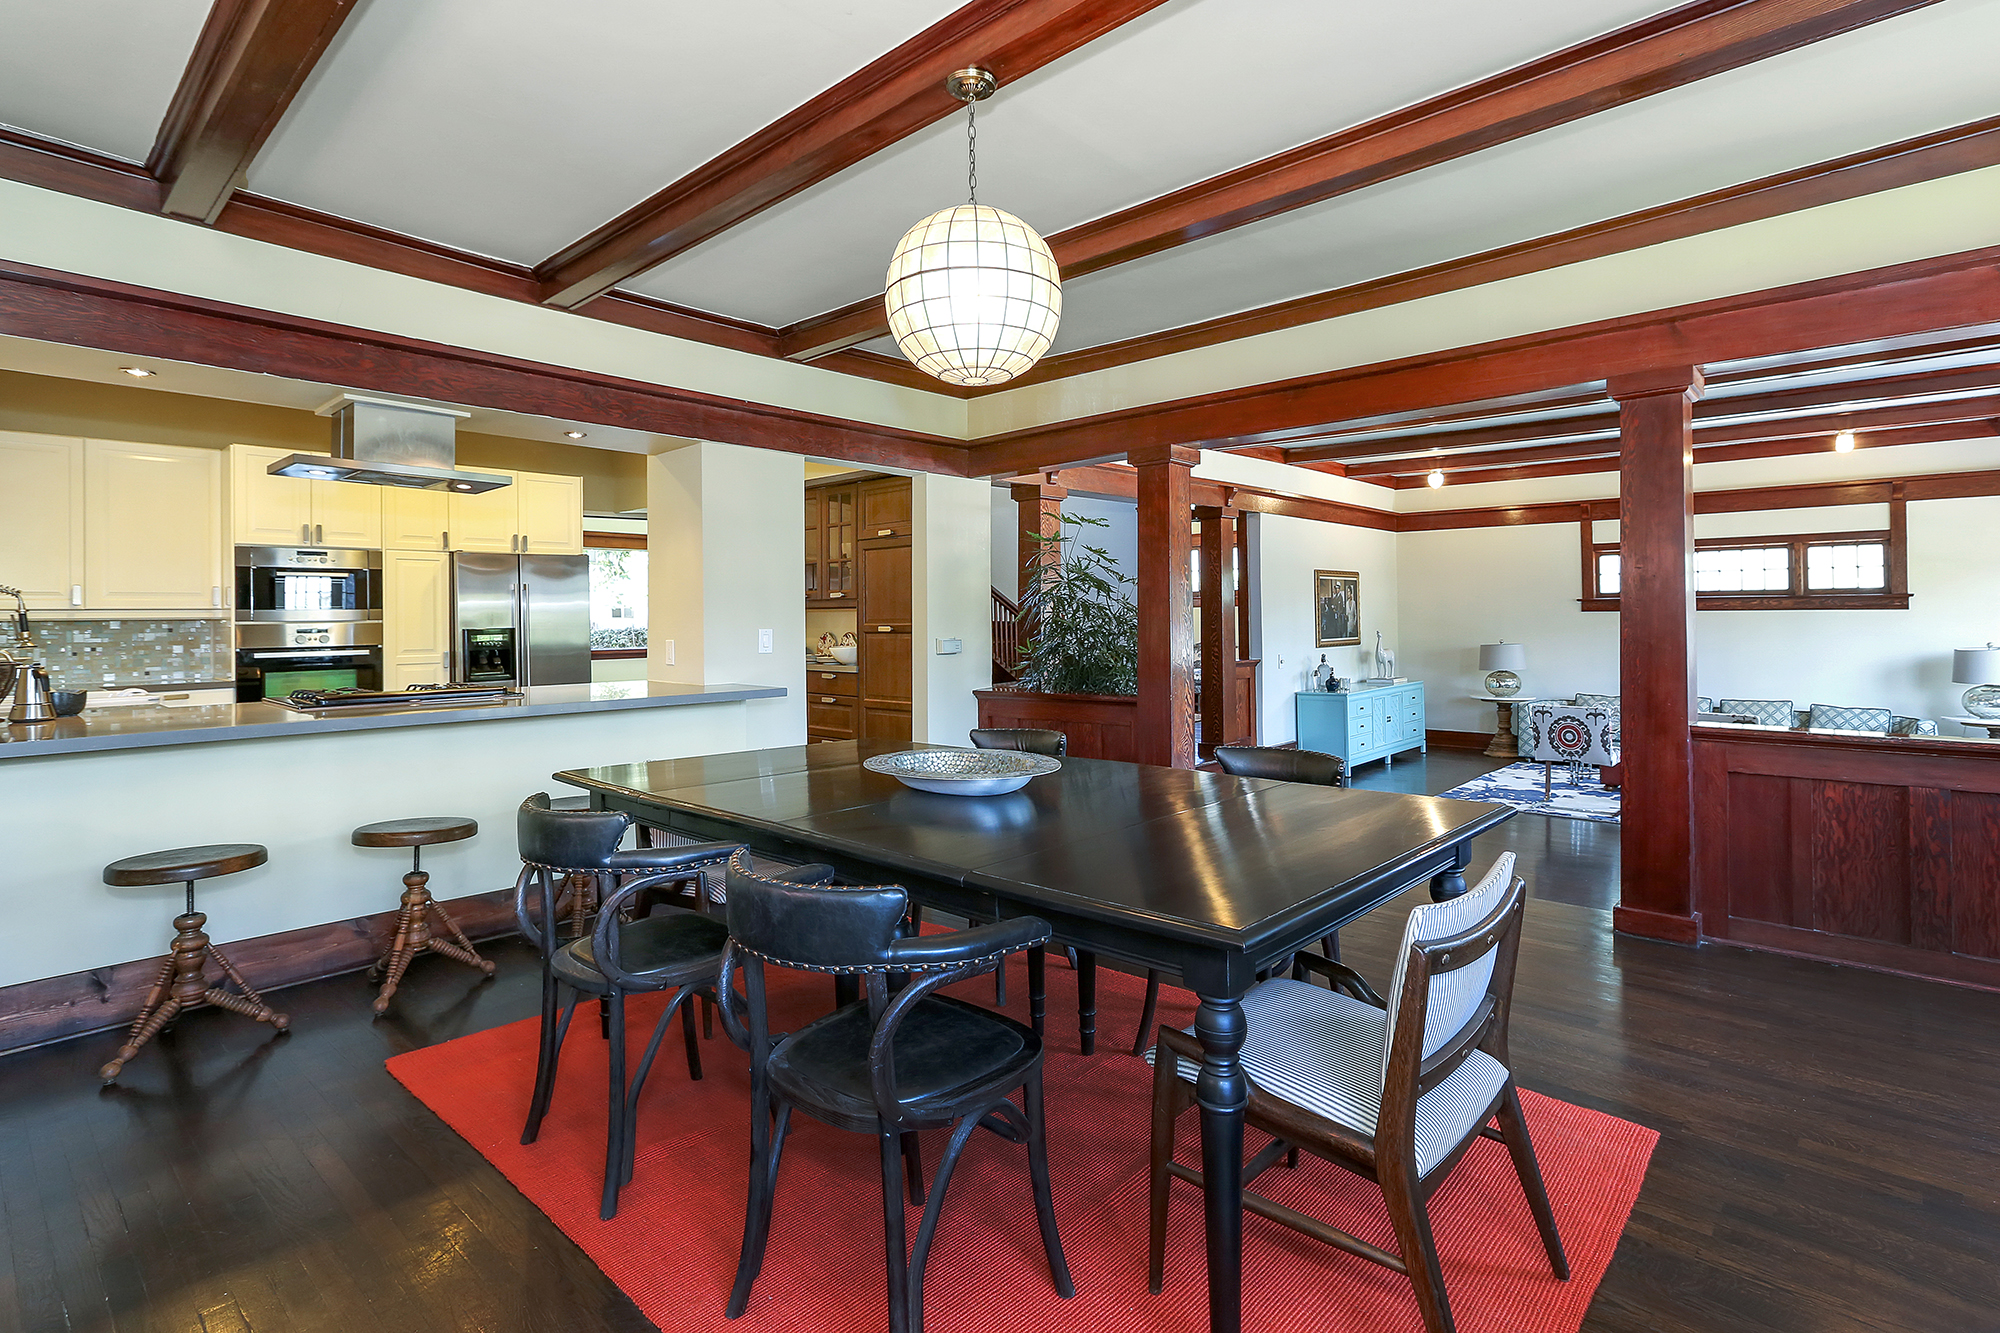 An extensive list of updates, including a complete kitchen makeover, brings this home smartly into the 21st century. The open design of this remodel does a brilliant job of connecting the dining room to the kitchen and features a breakfast bar that easily accommodates 4 seats.